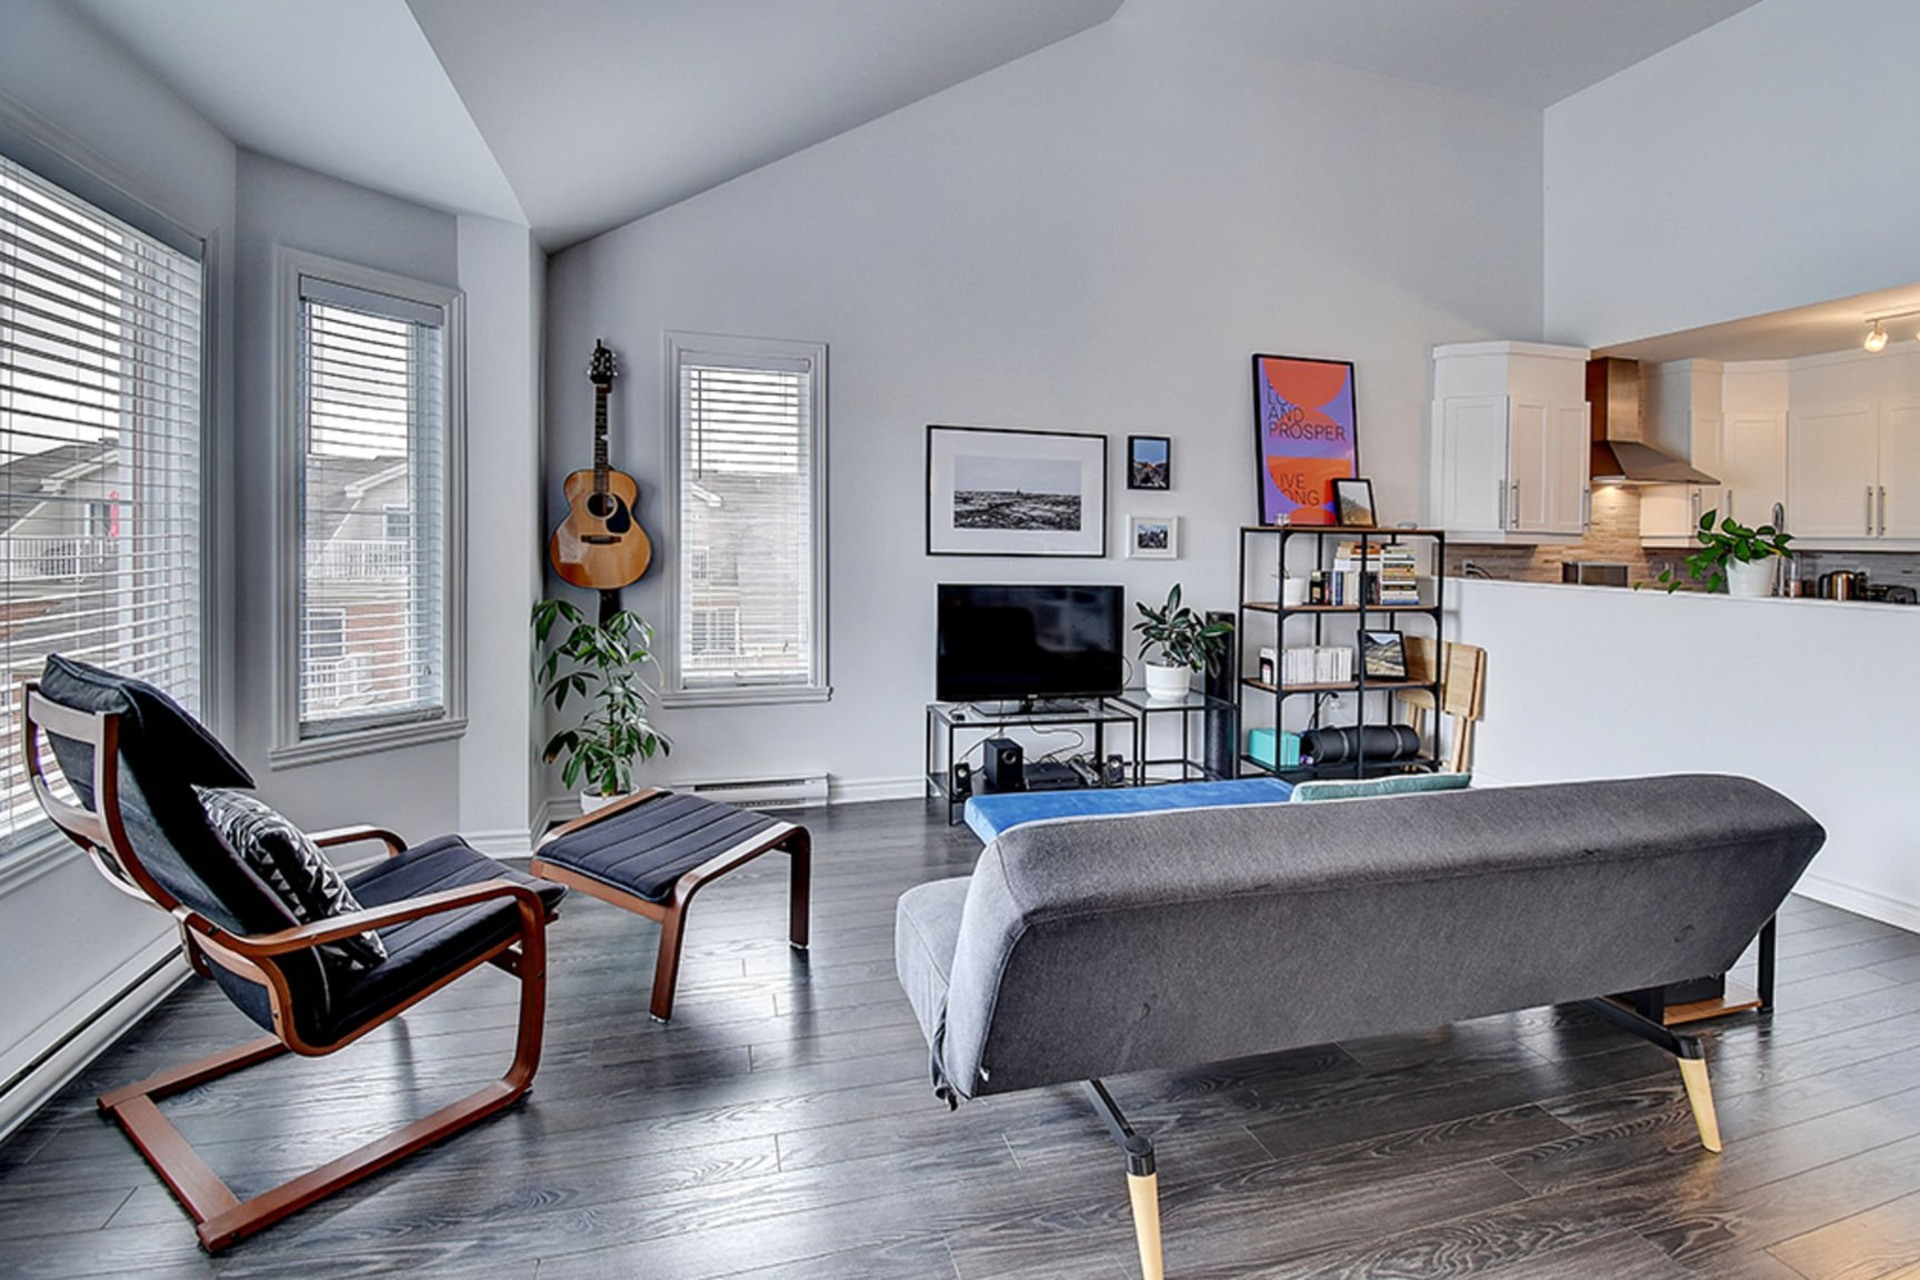 image 2 - Apartment For sale Brossard - 5 rooms